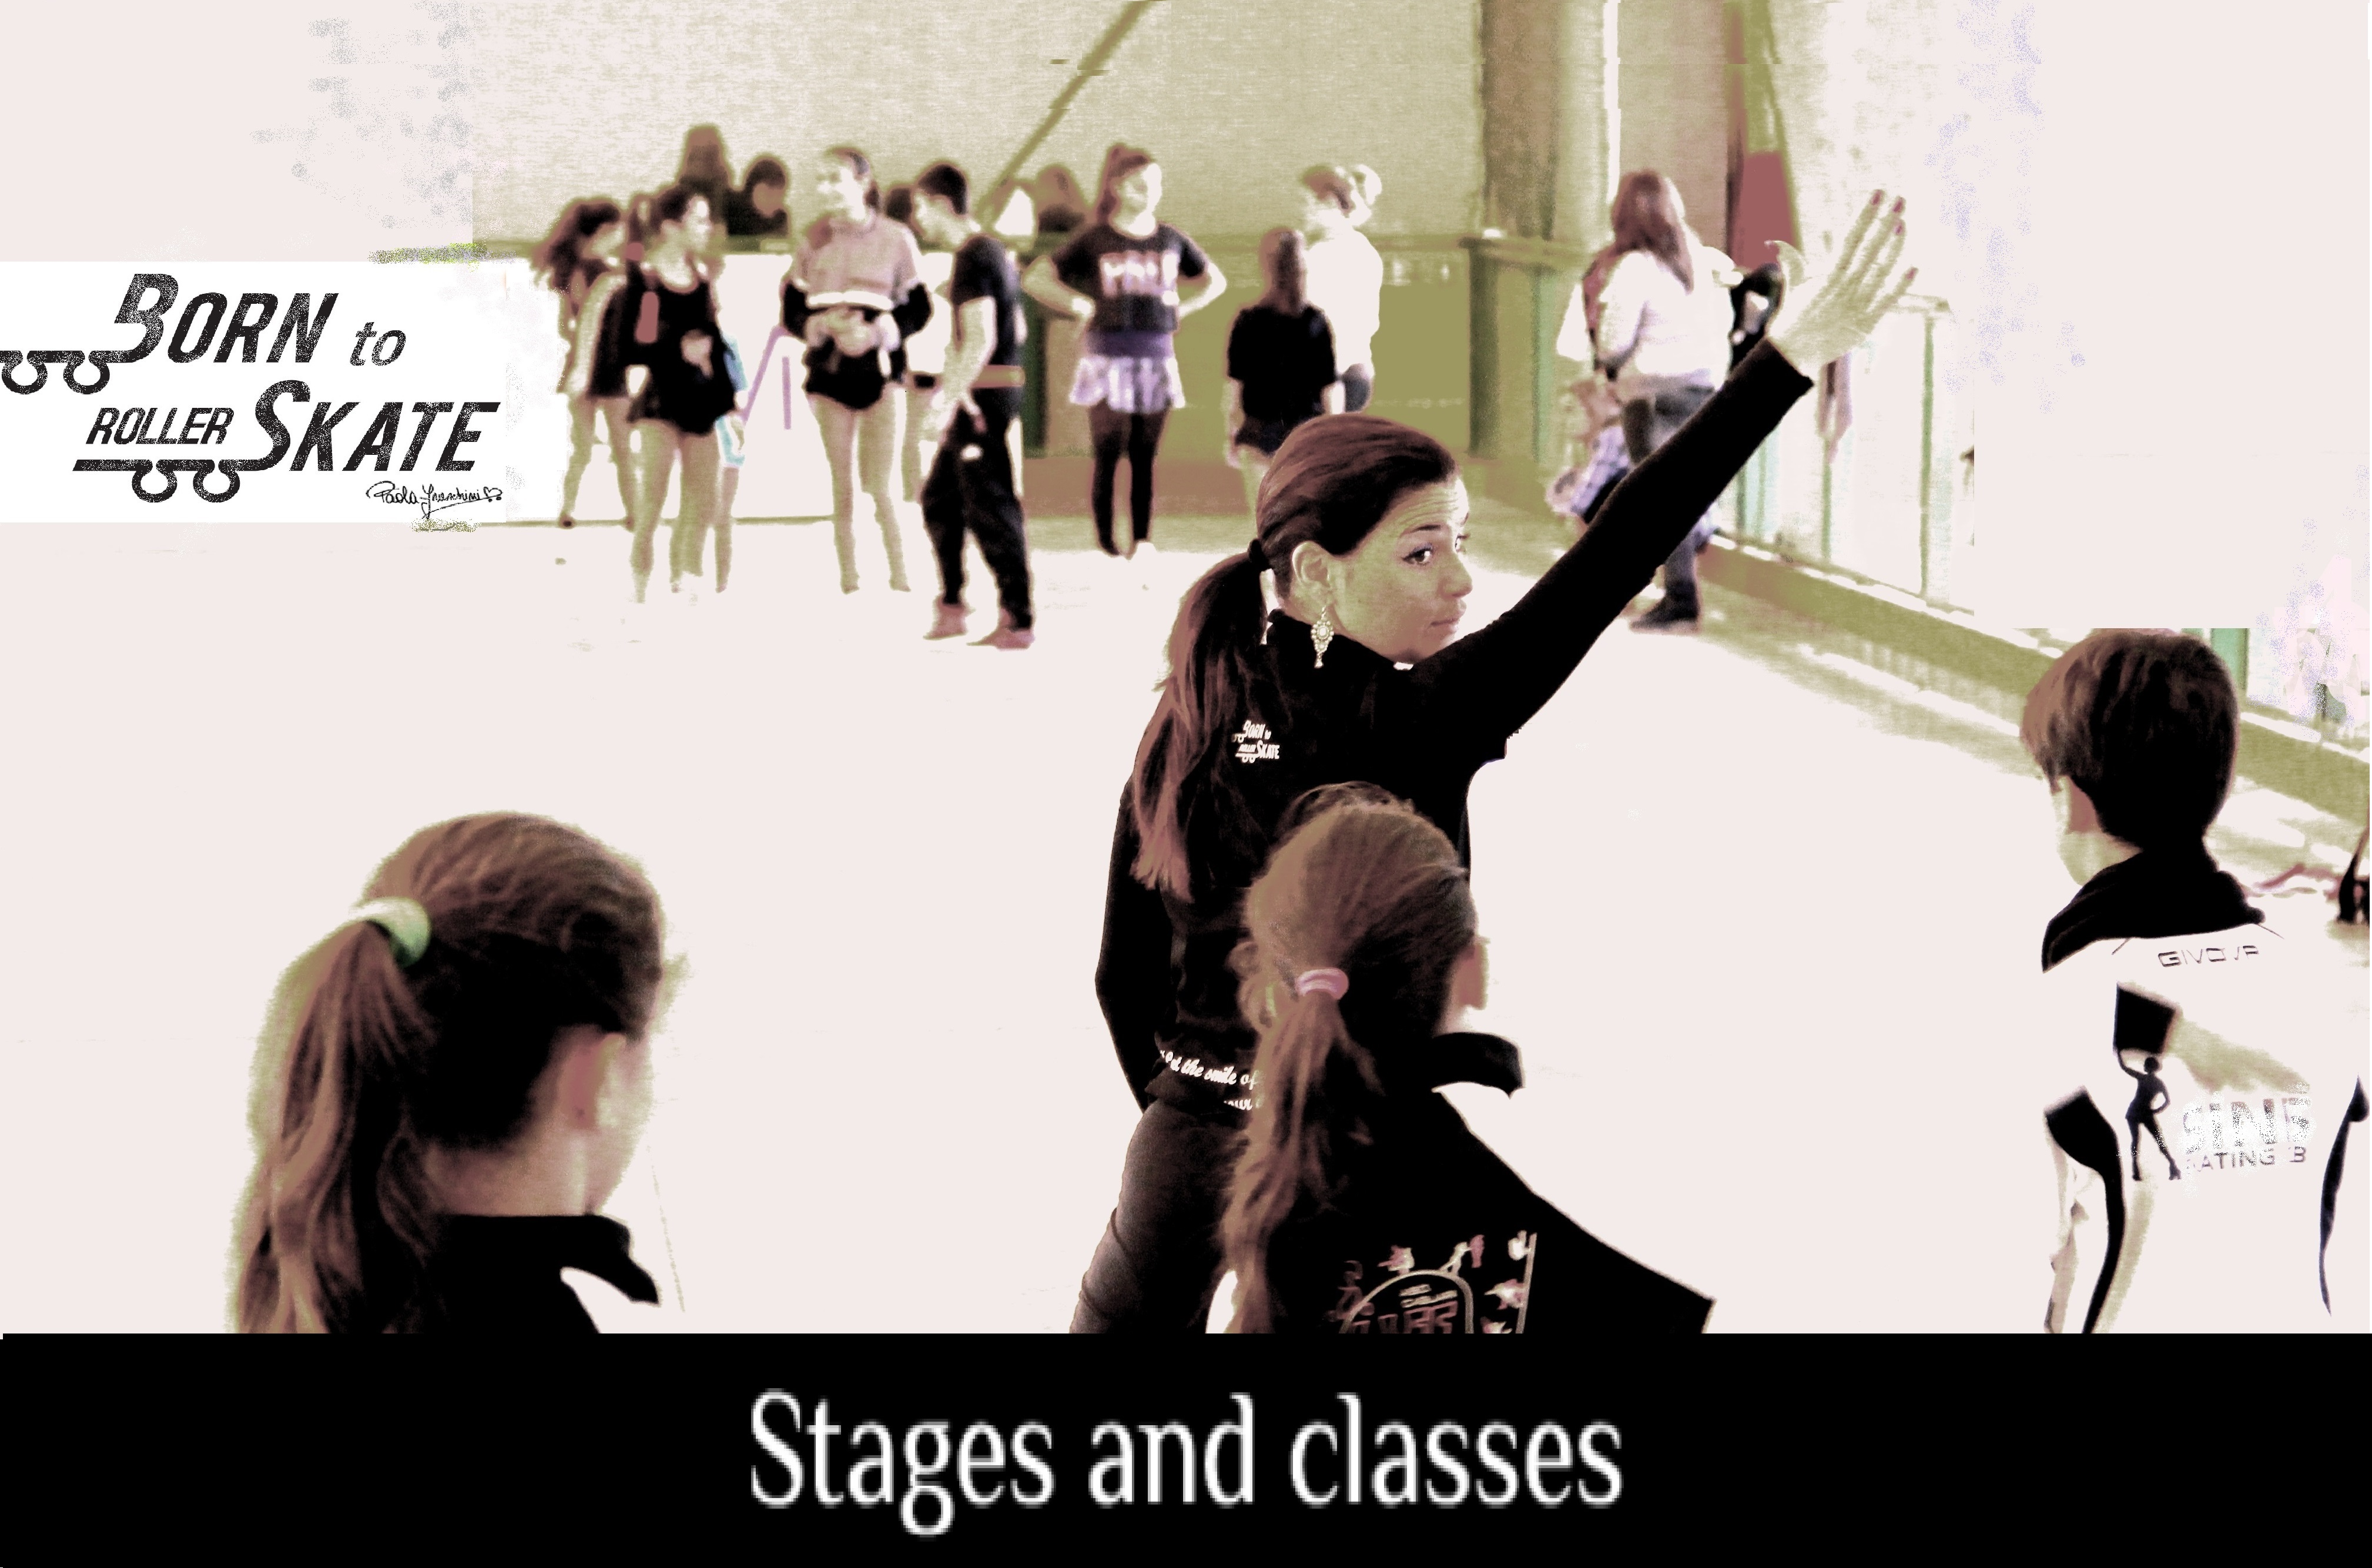 skating-stage-classes-workshop